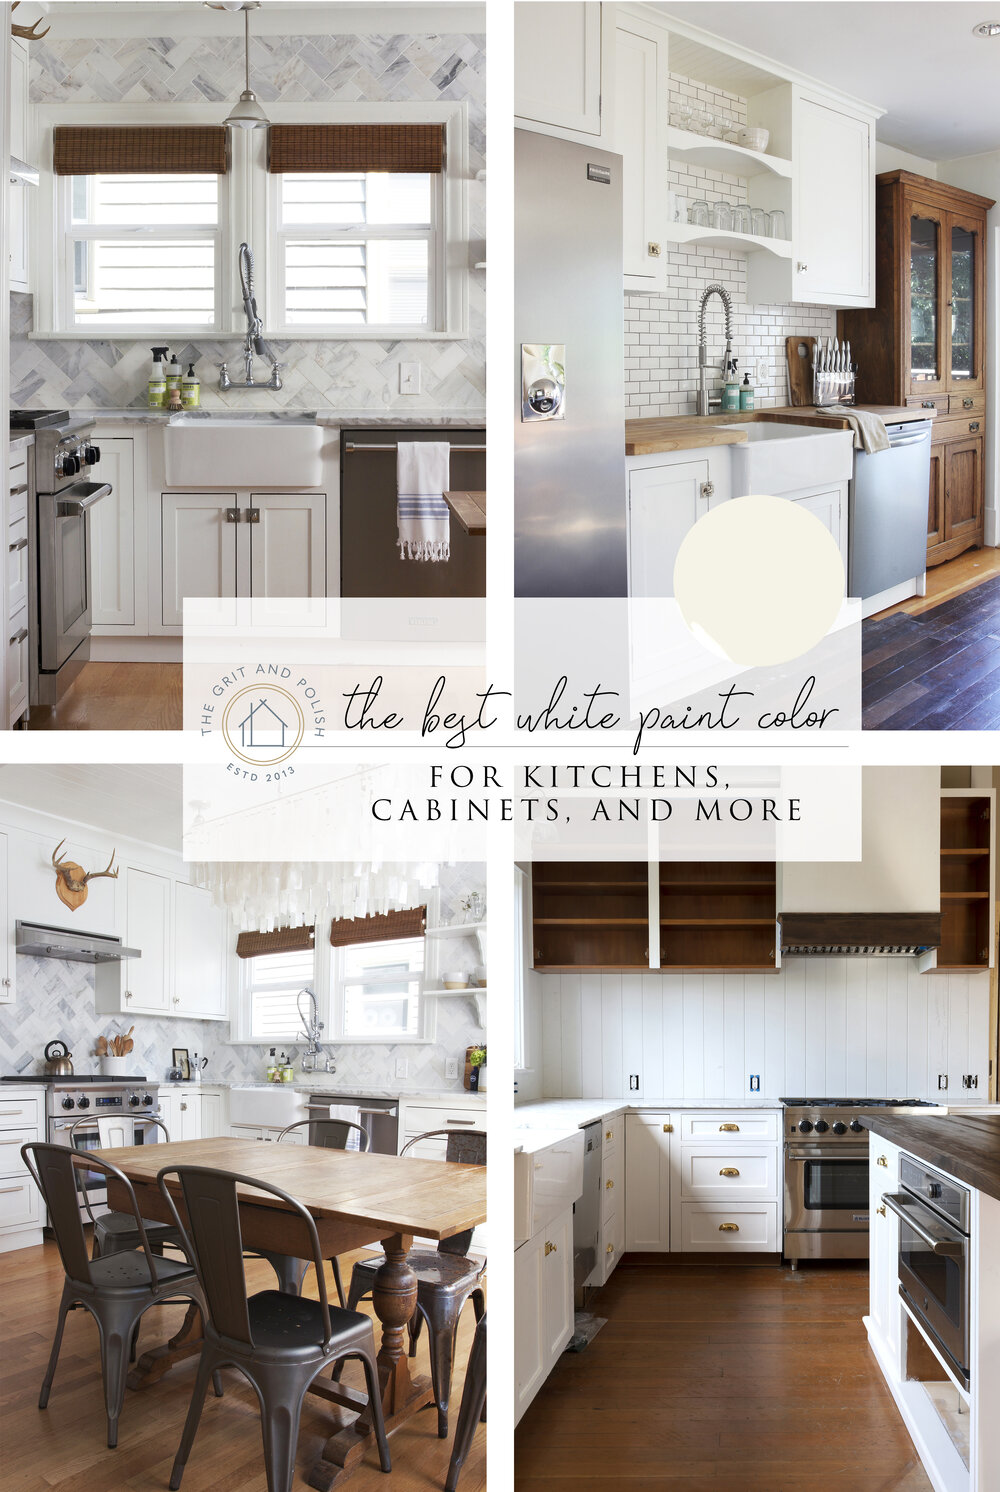 Our Favorite White Paint Color for Kitchens & Cabinets — The Grit ...